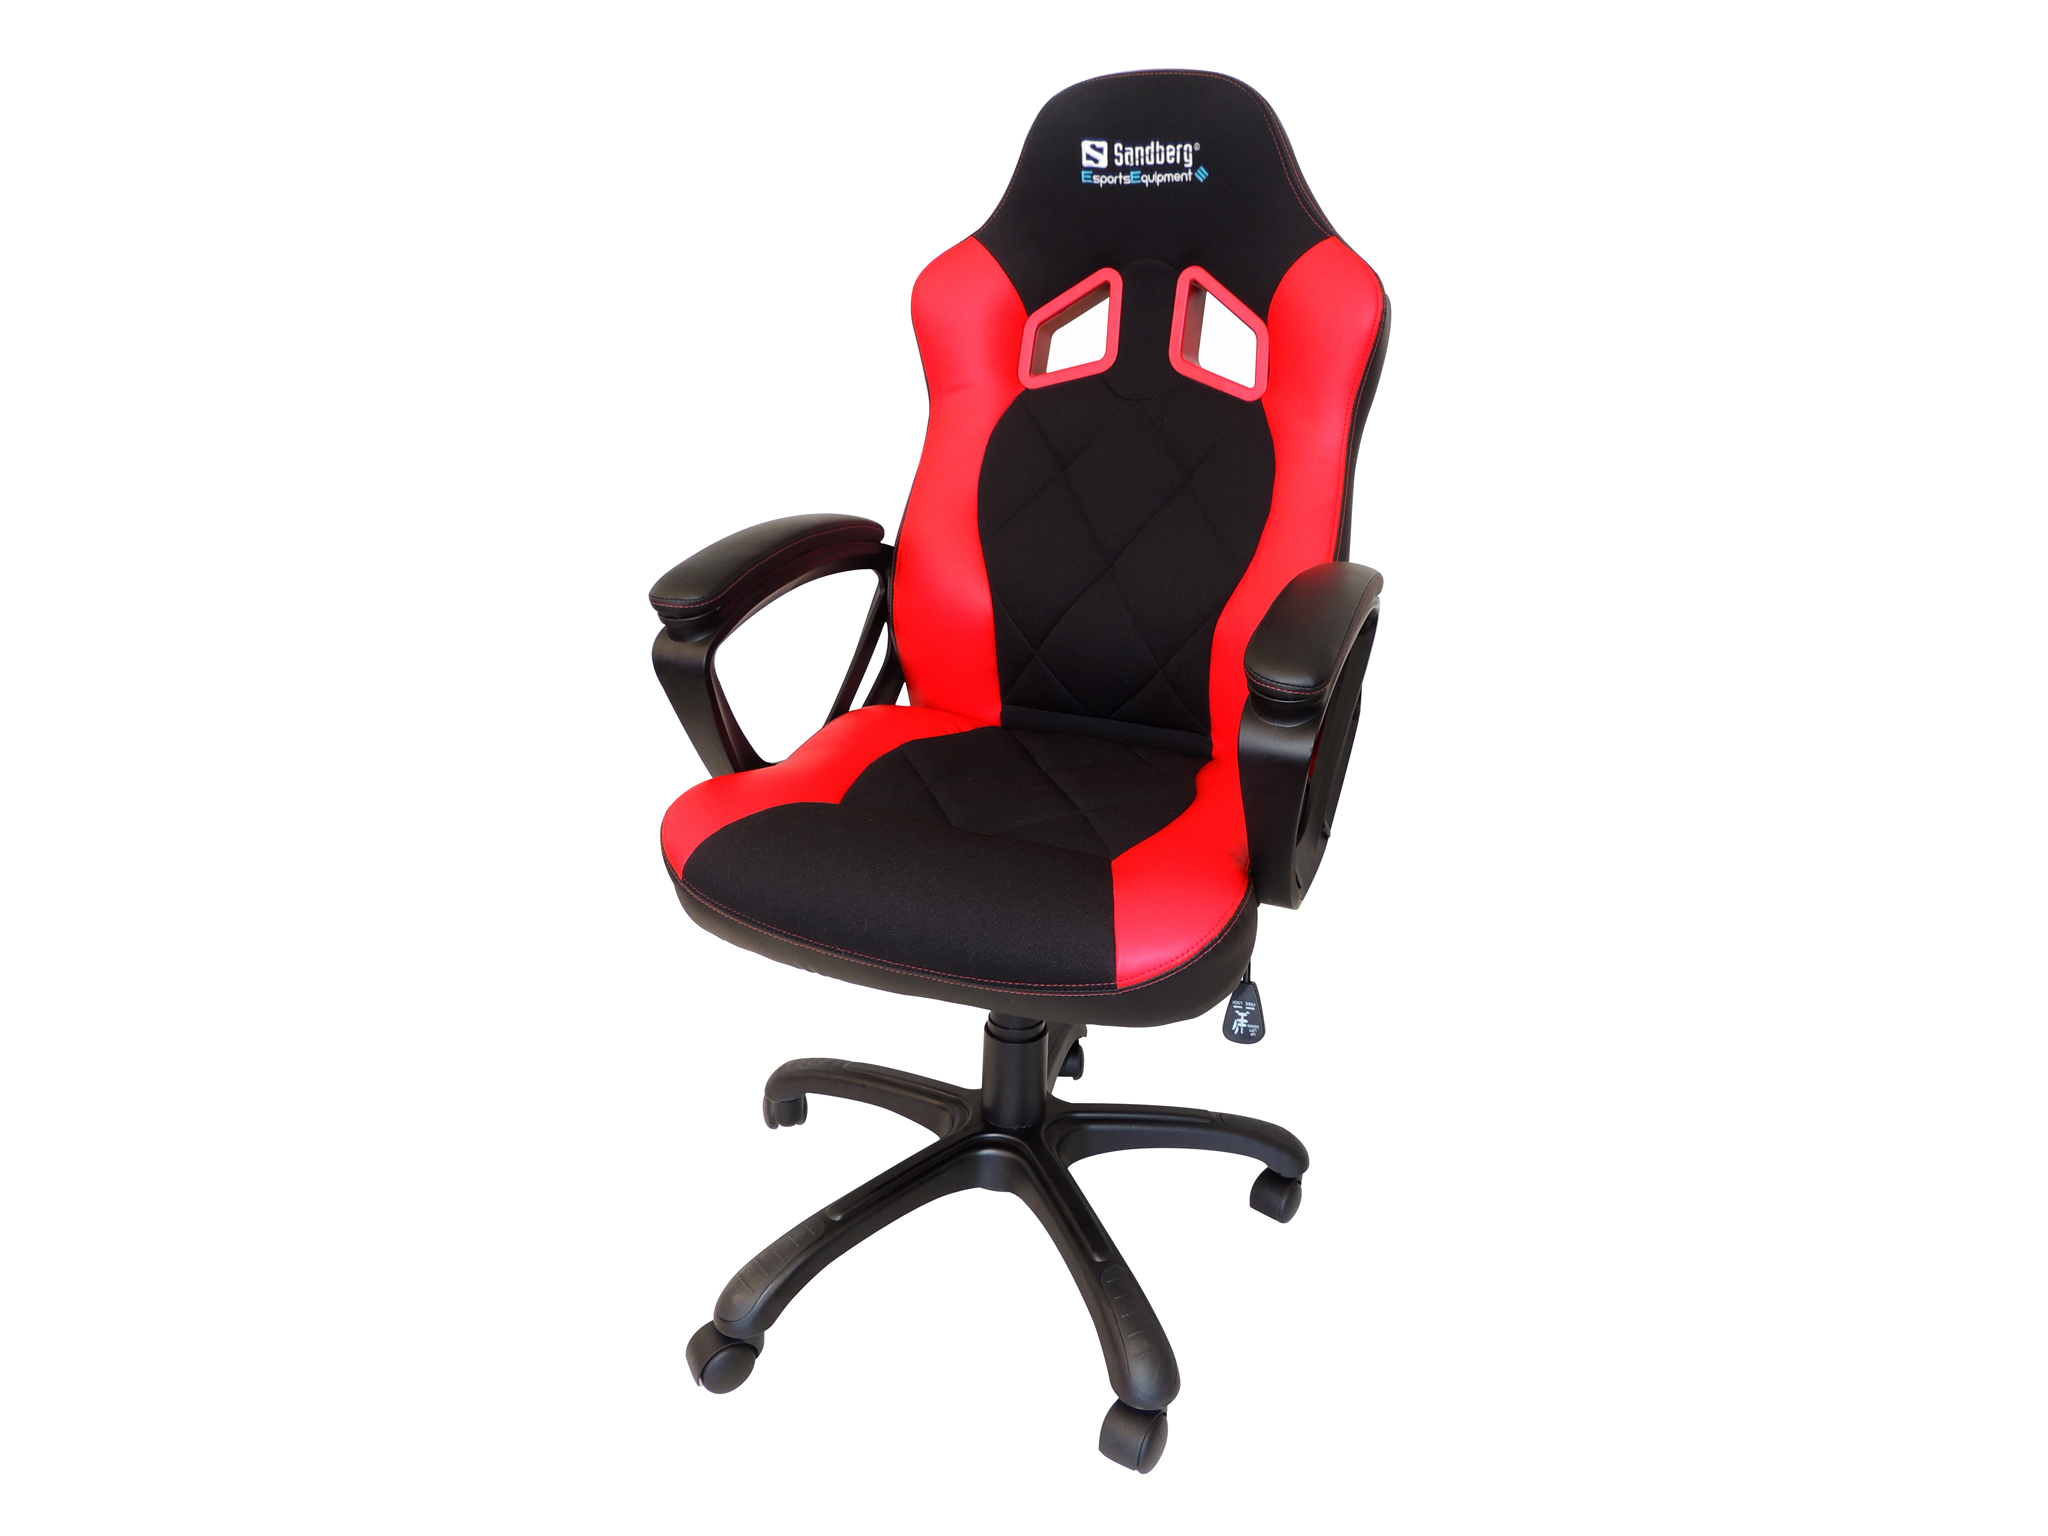 Gaiming Chair Sandberg Warrior Gaming Chair Product Review Thisgengaming